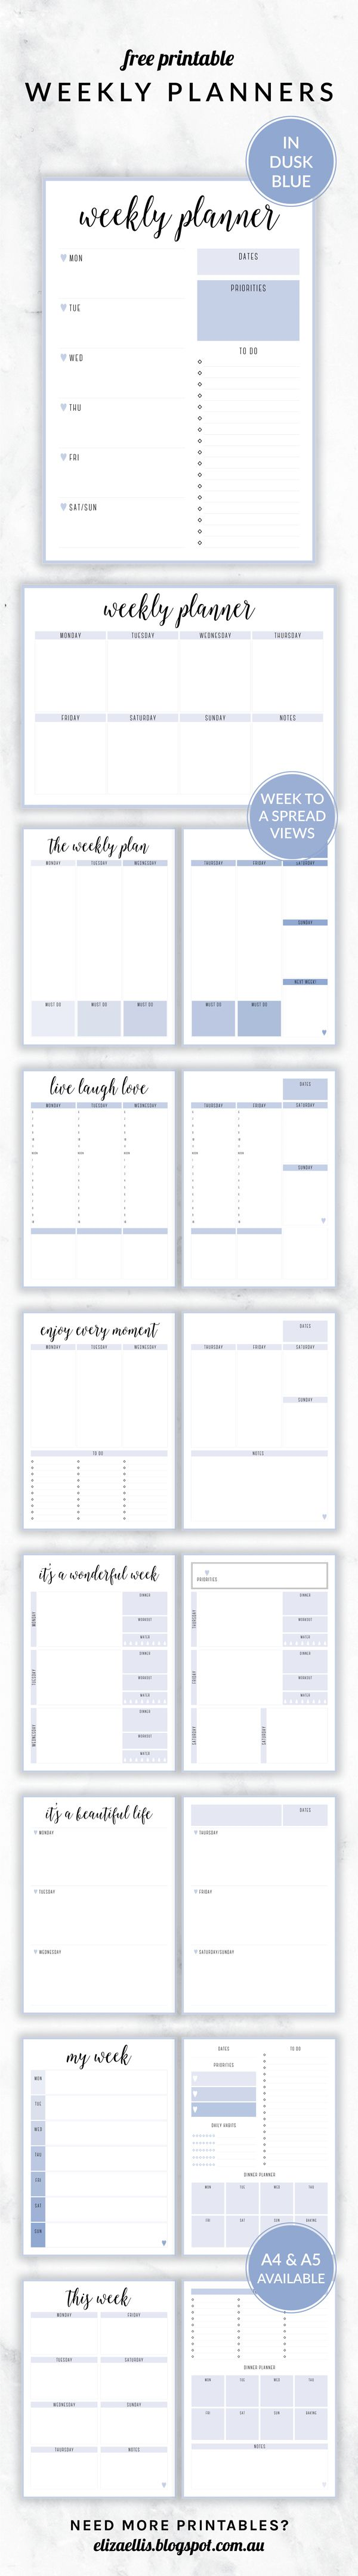 Free Printable Irma Weekly Planners in Dusk by Eliza Ellis. With nine different styles, they're the perfect organizing solution for mums, entrepreneurs, bloggers, etsy sellers, professionals, WAHM's, SAHM's, students and moms. Available in 6 colors and both A4 and A5 sizes. Includes week to a page planners as well as week to a spread and two page planners. Enjoy!